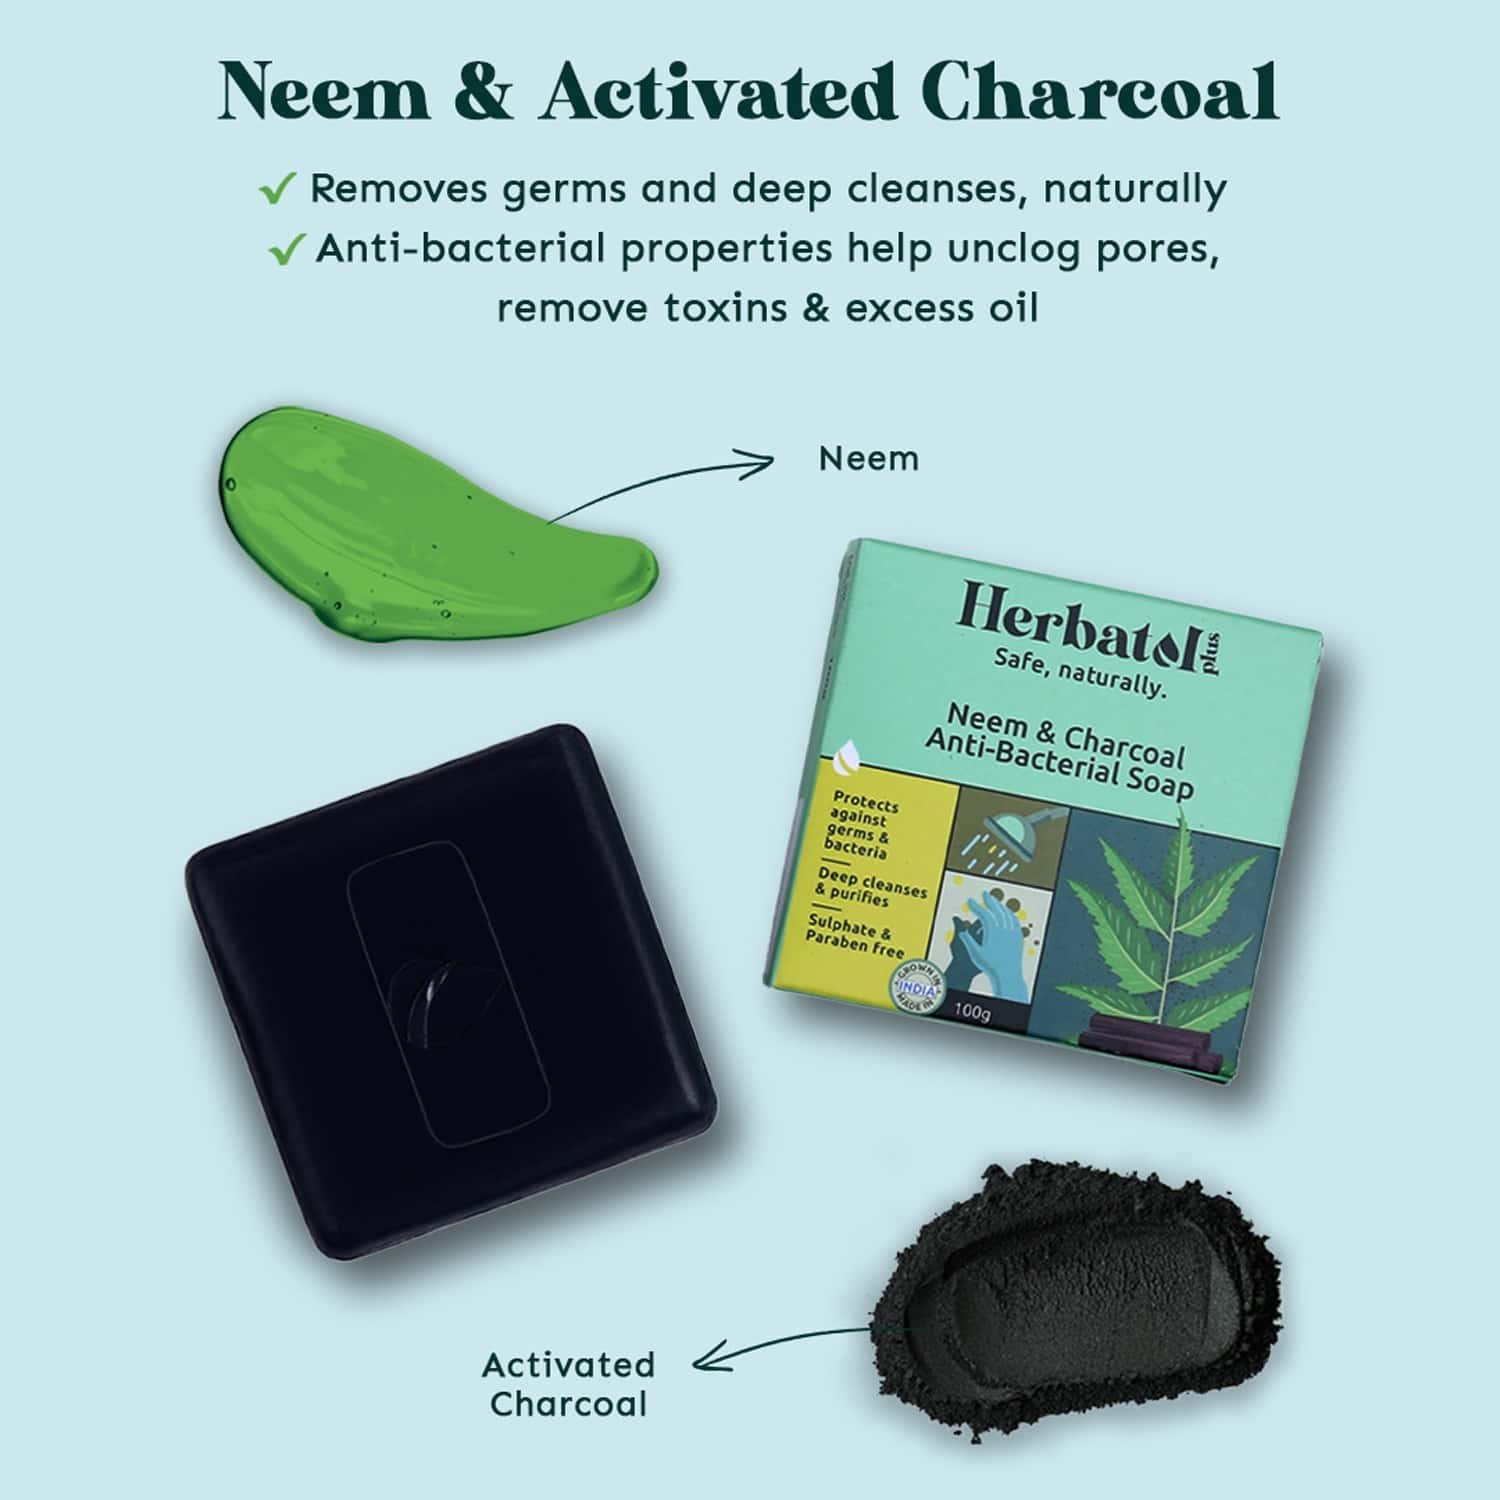 Herbatol Plus Anti-bacterial Soap (100gm) For 99.99% Germ Protection With Neem & Charcoal | Made In India